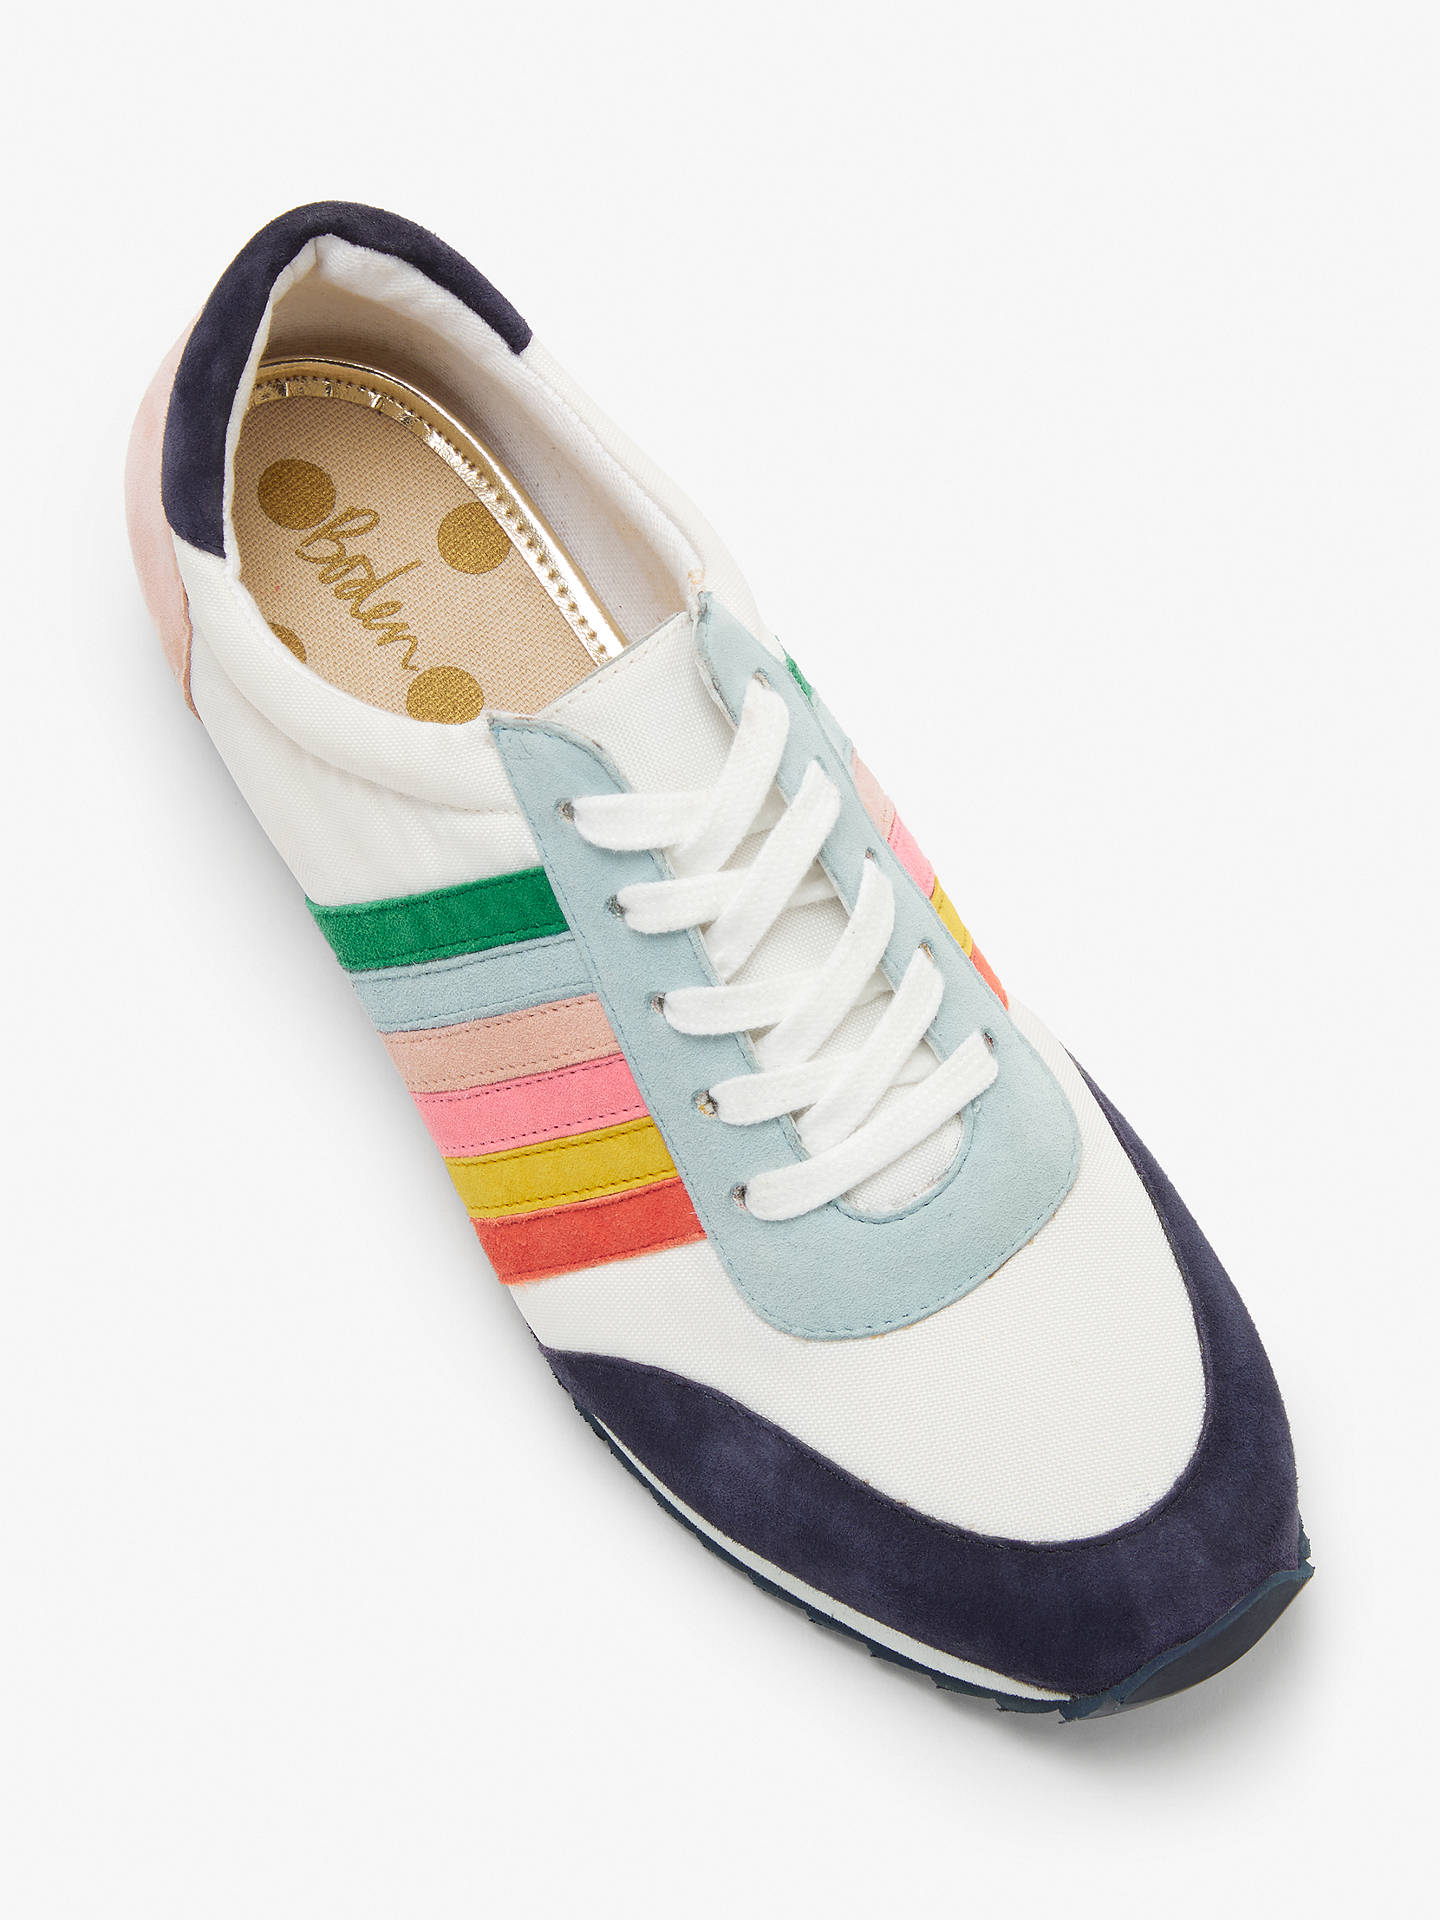 Buy Boden Striped Trainers, White Multi Suede, 8 Online at johnlewis.com